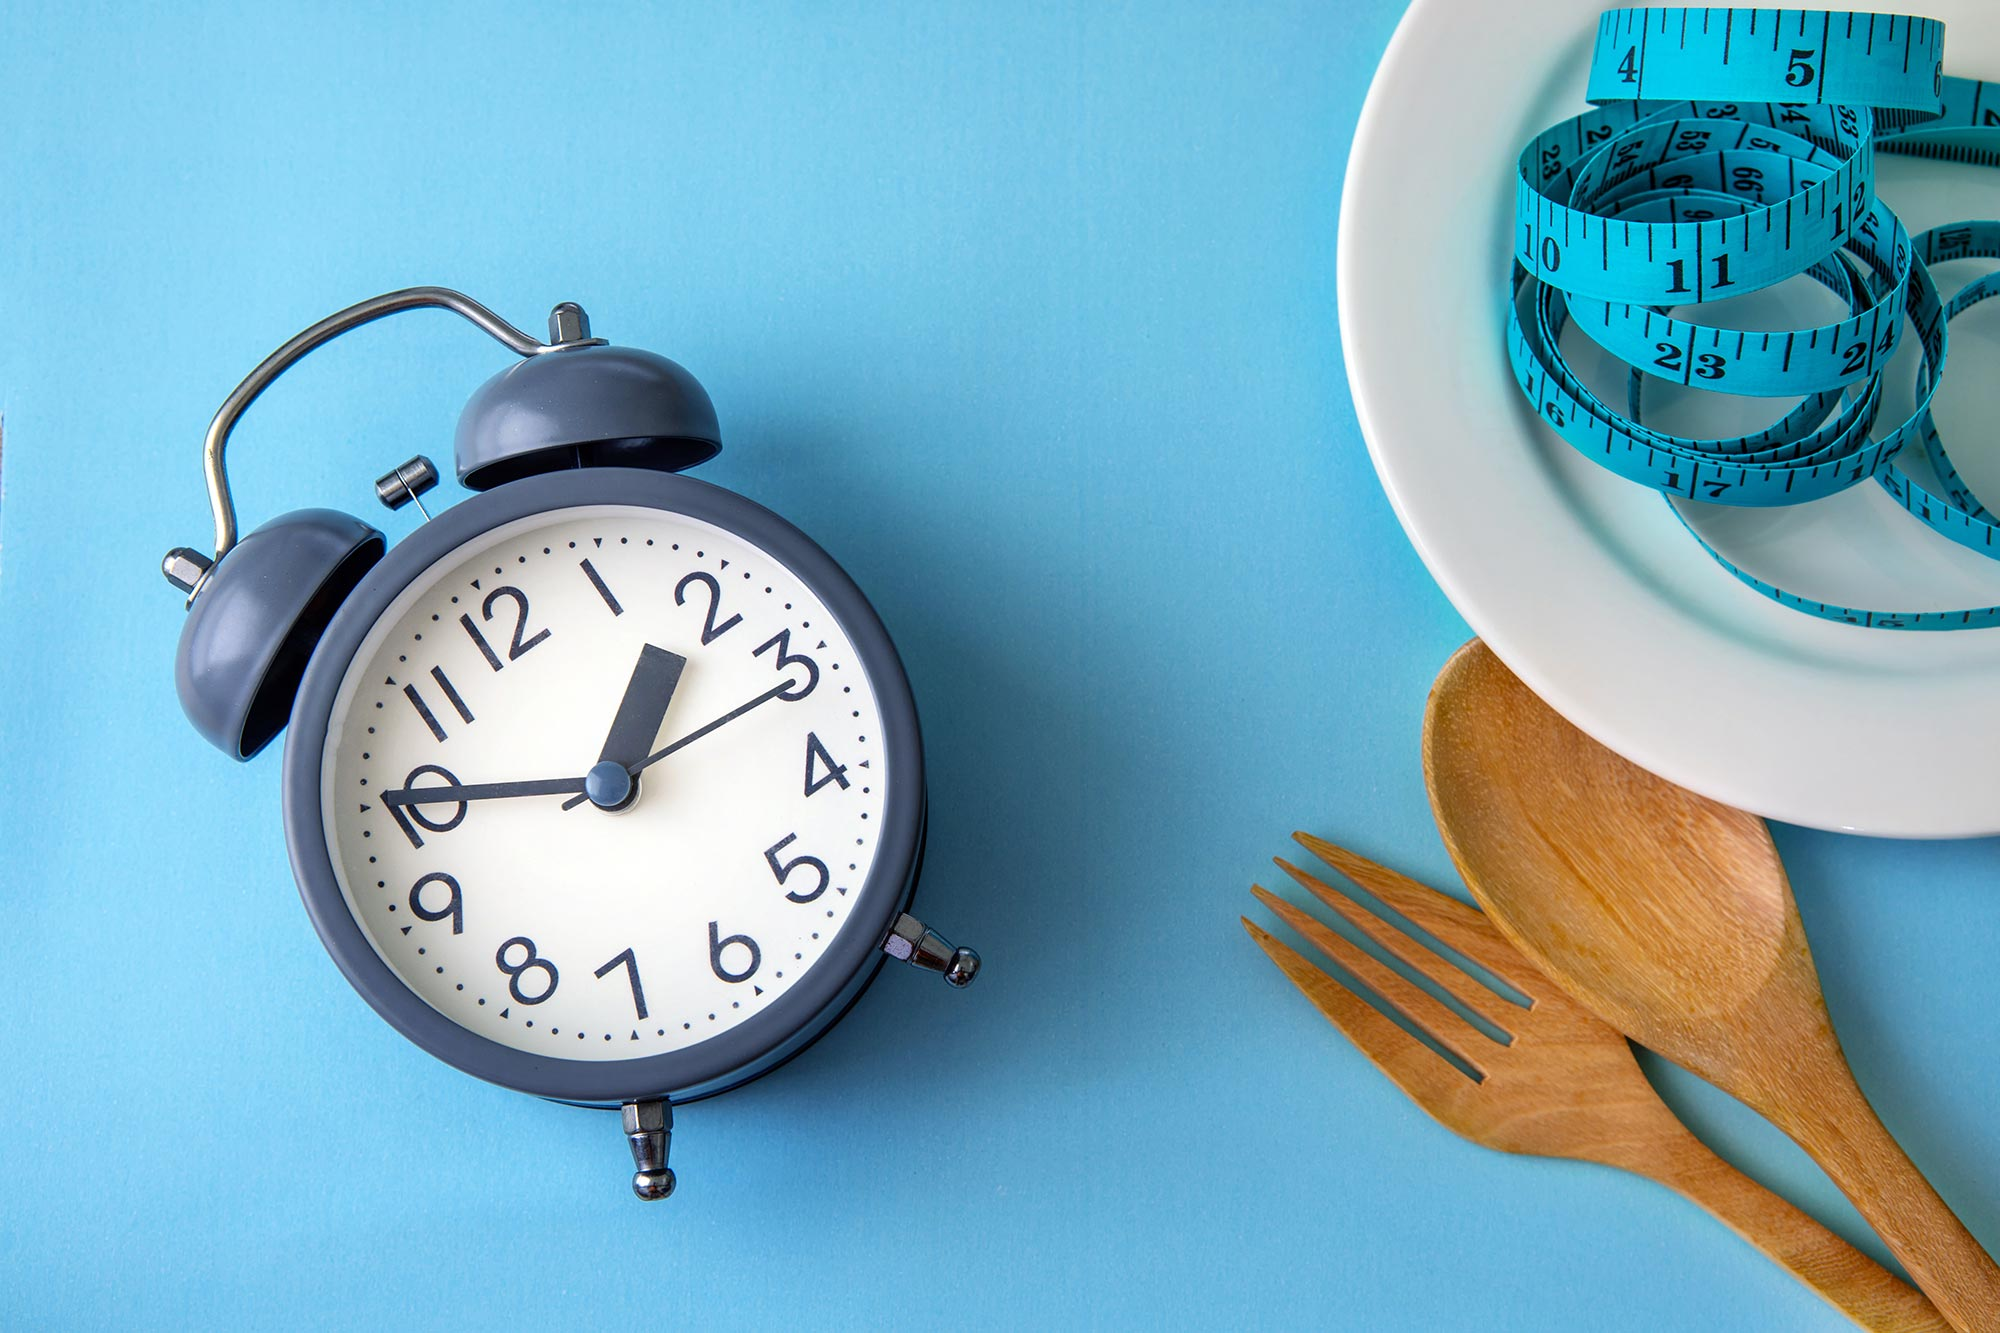 Clinical study finds eating within 10-hour window may help stave off diabetes, heart disease